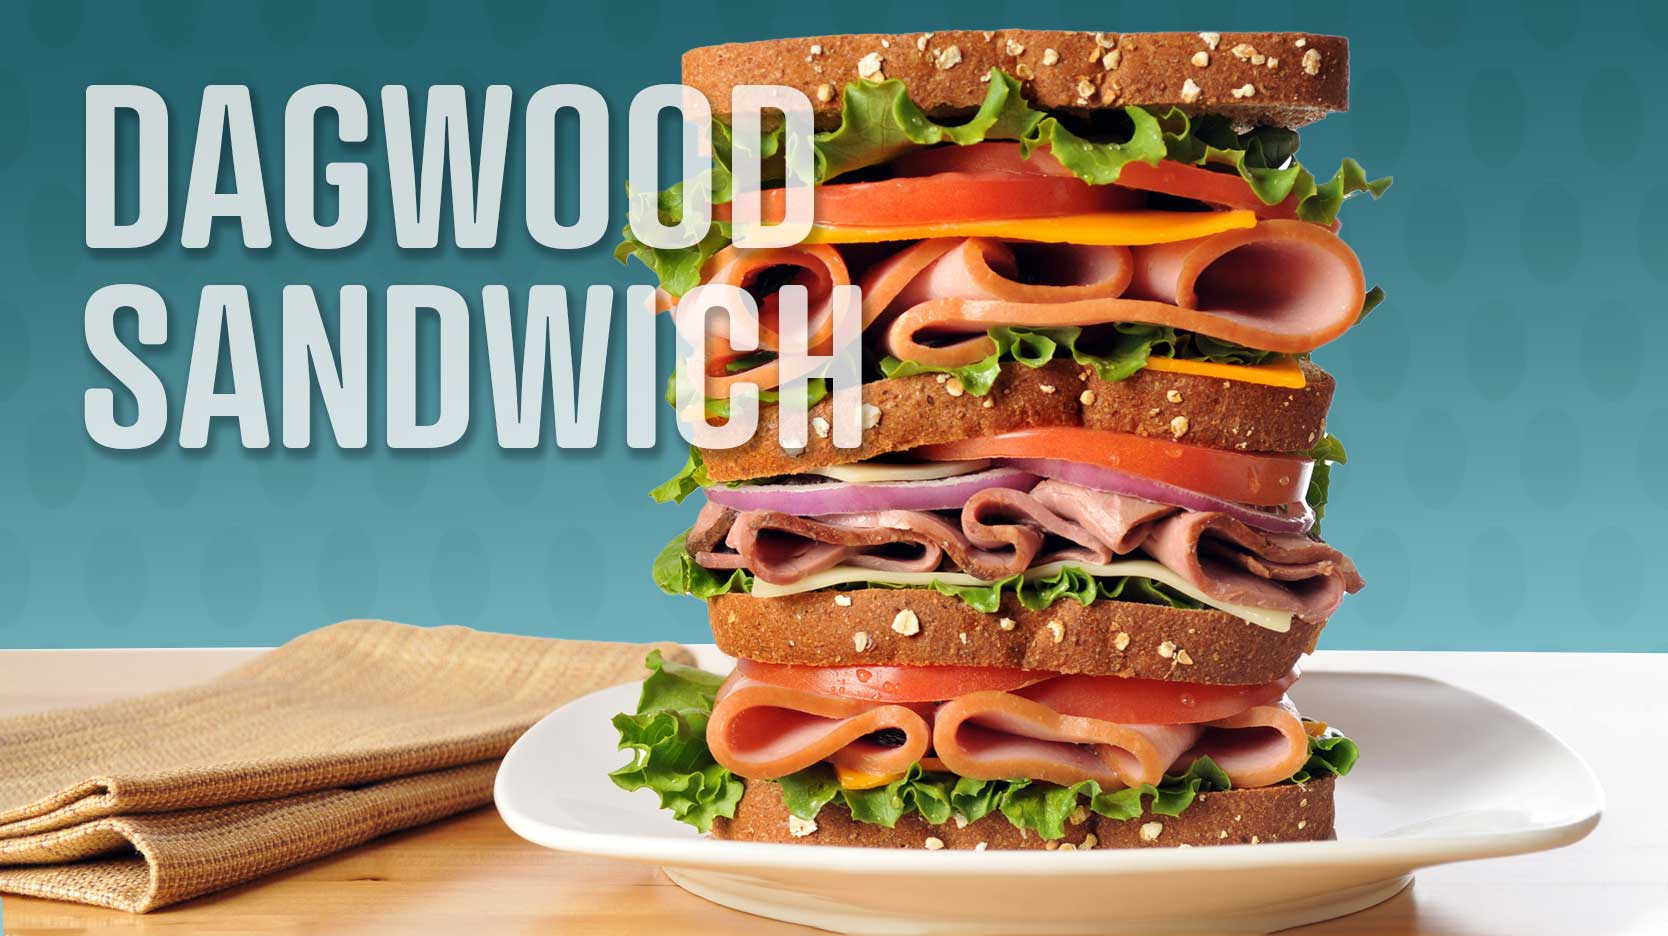 foods that start with D dagwood sandwhich